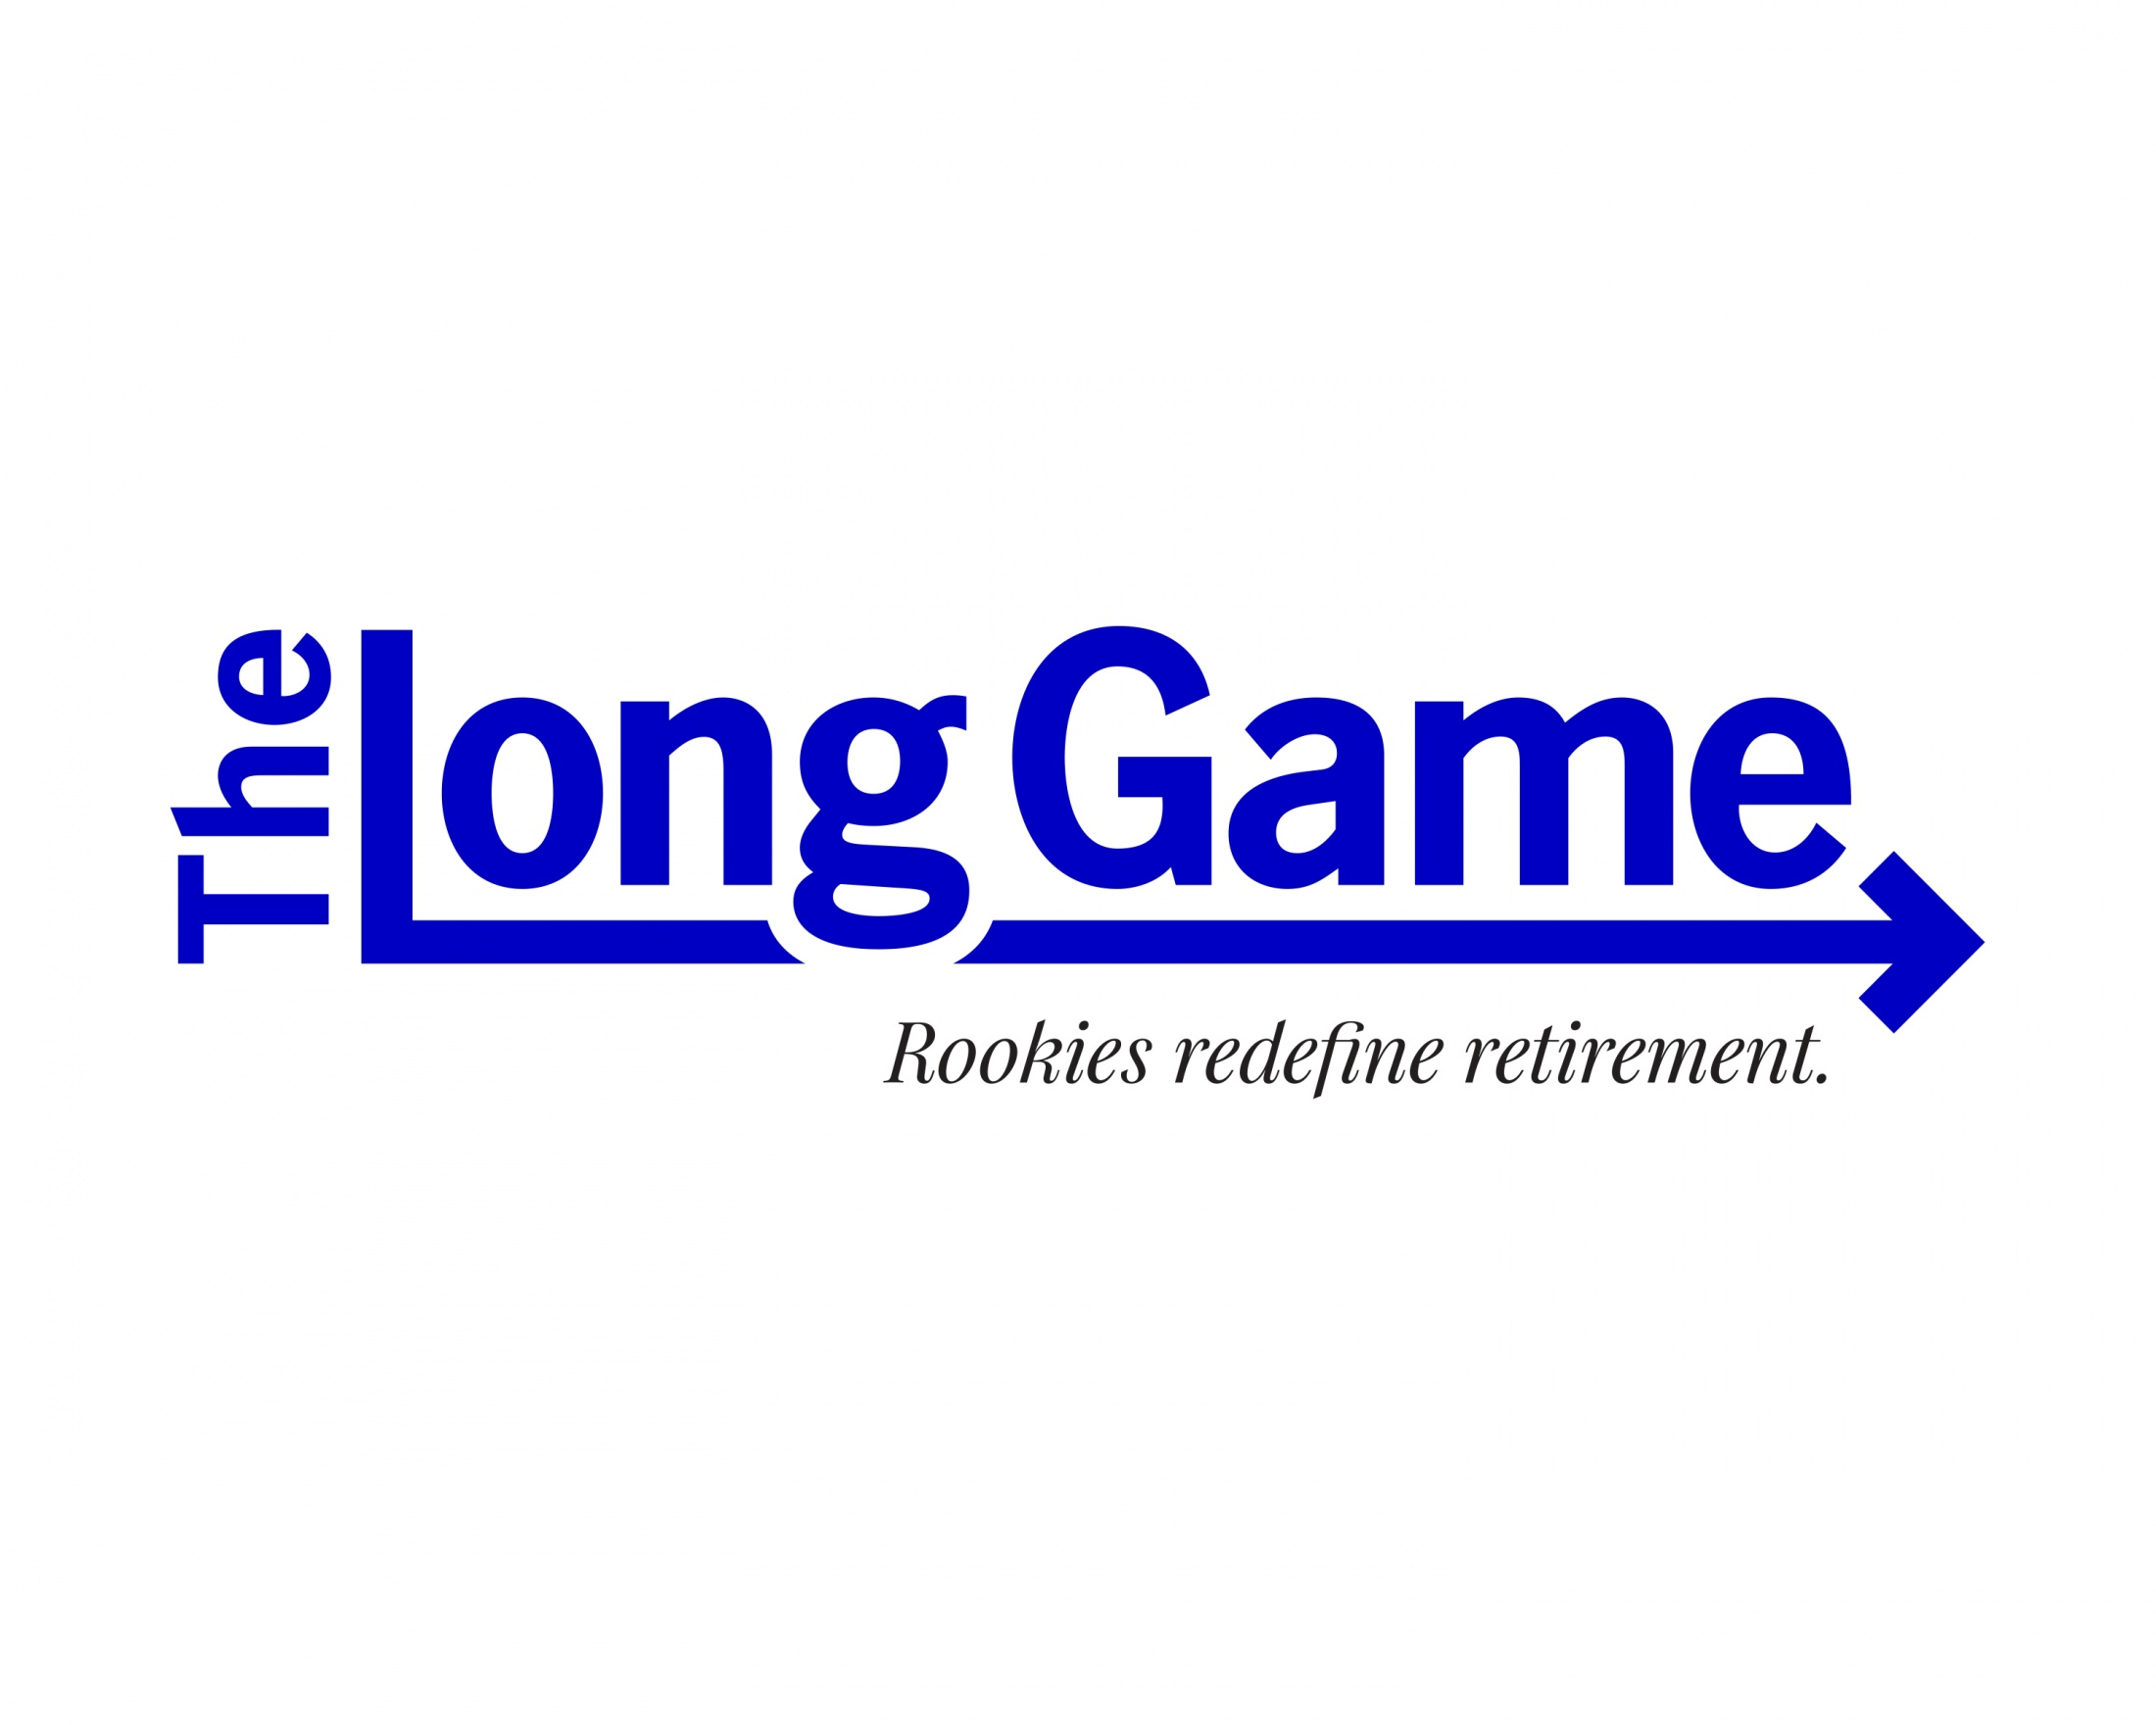 Thumbnail for The Long Game